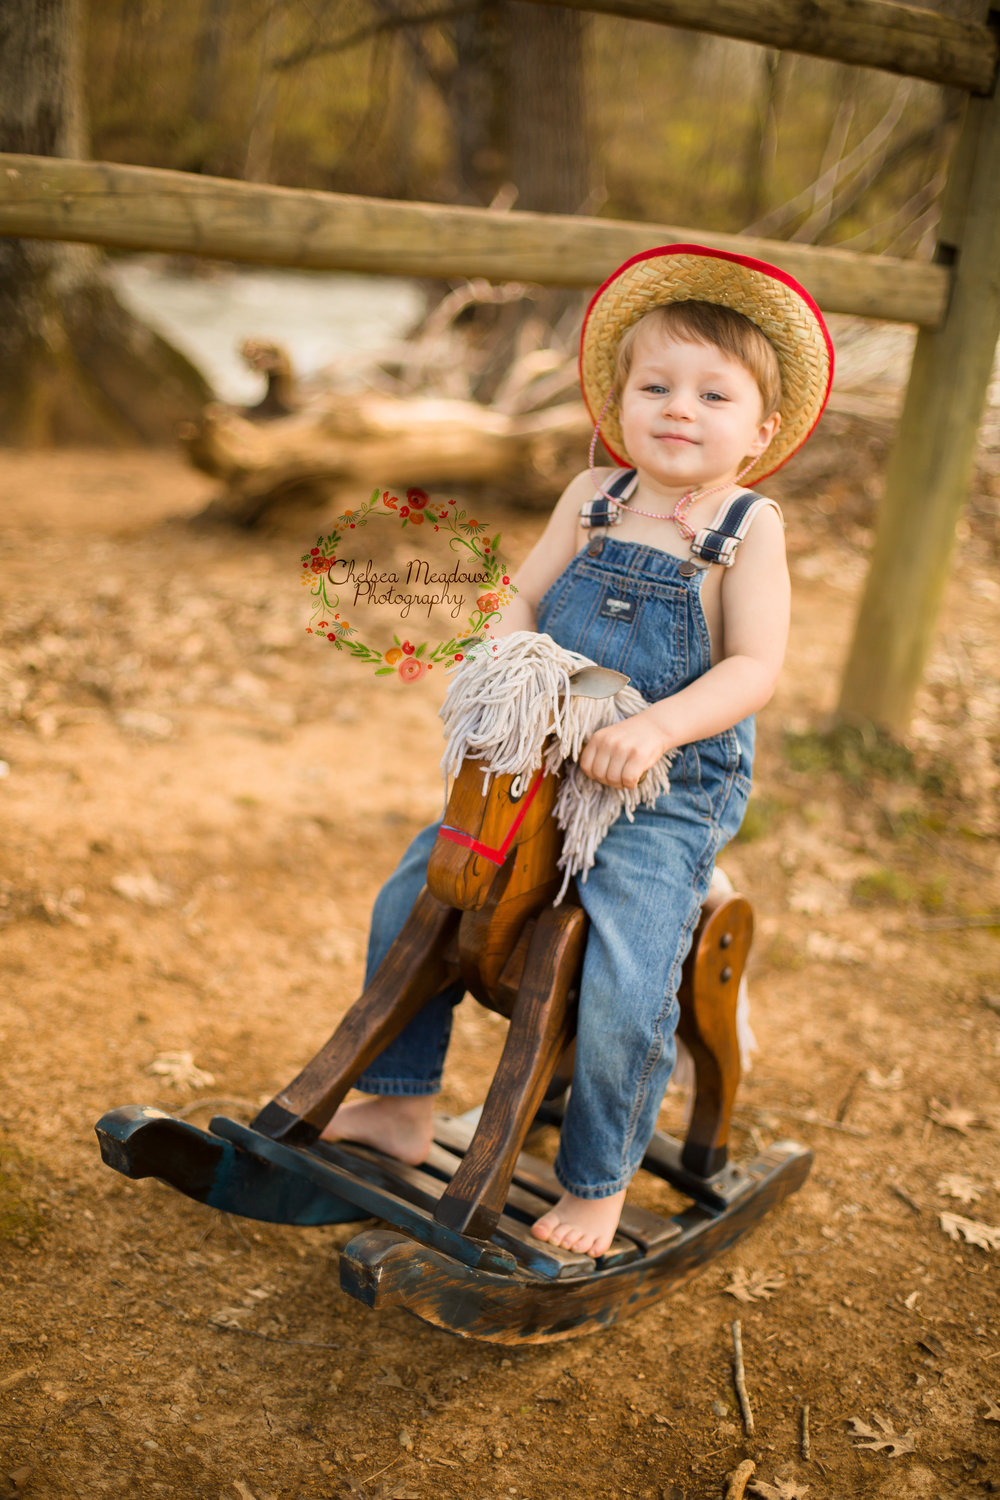 Grayson Cowboy Photos - Nashville family Photographer - Chelsea Meadows Photography (35)_edited-2.jpg